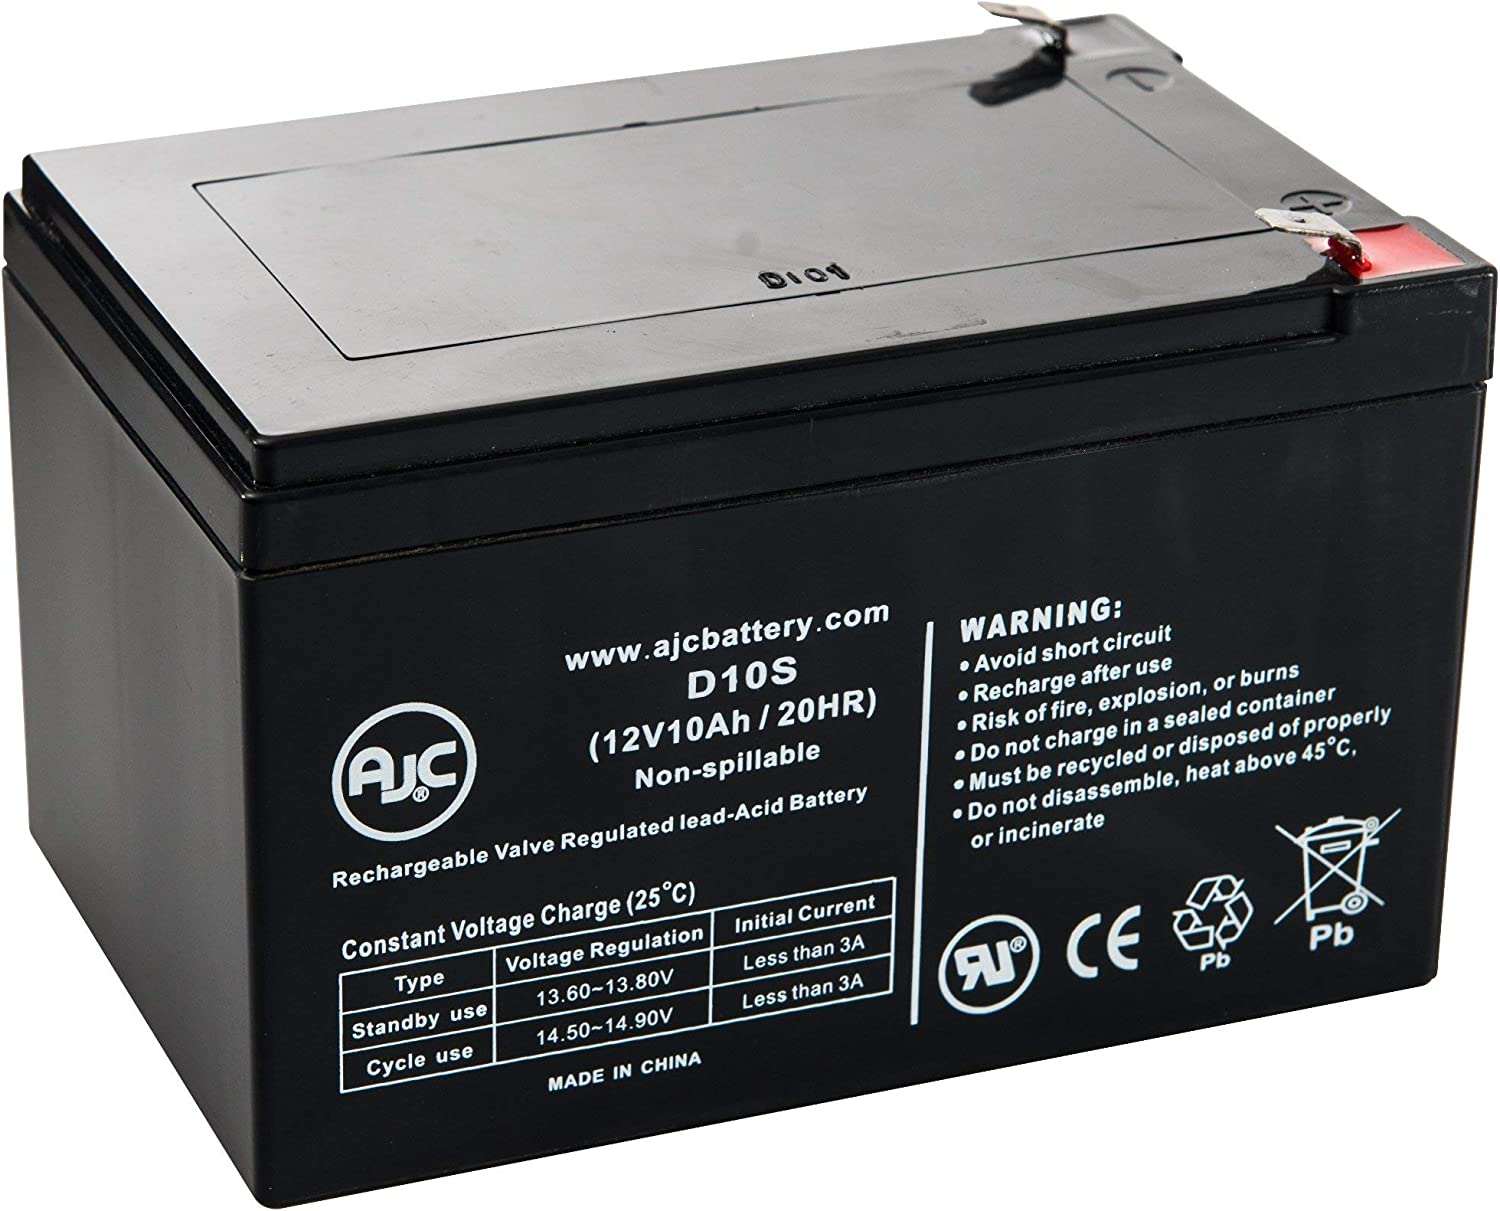 Portalac PXL12120 12V 10Ah UPS Battery This is an AJC Brand Replacement